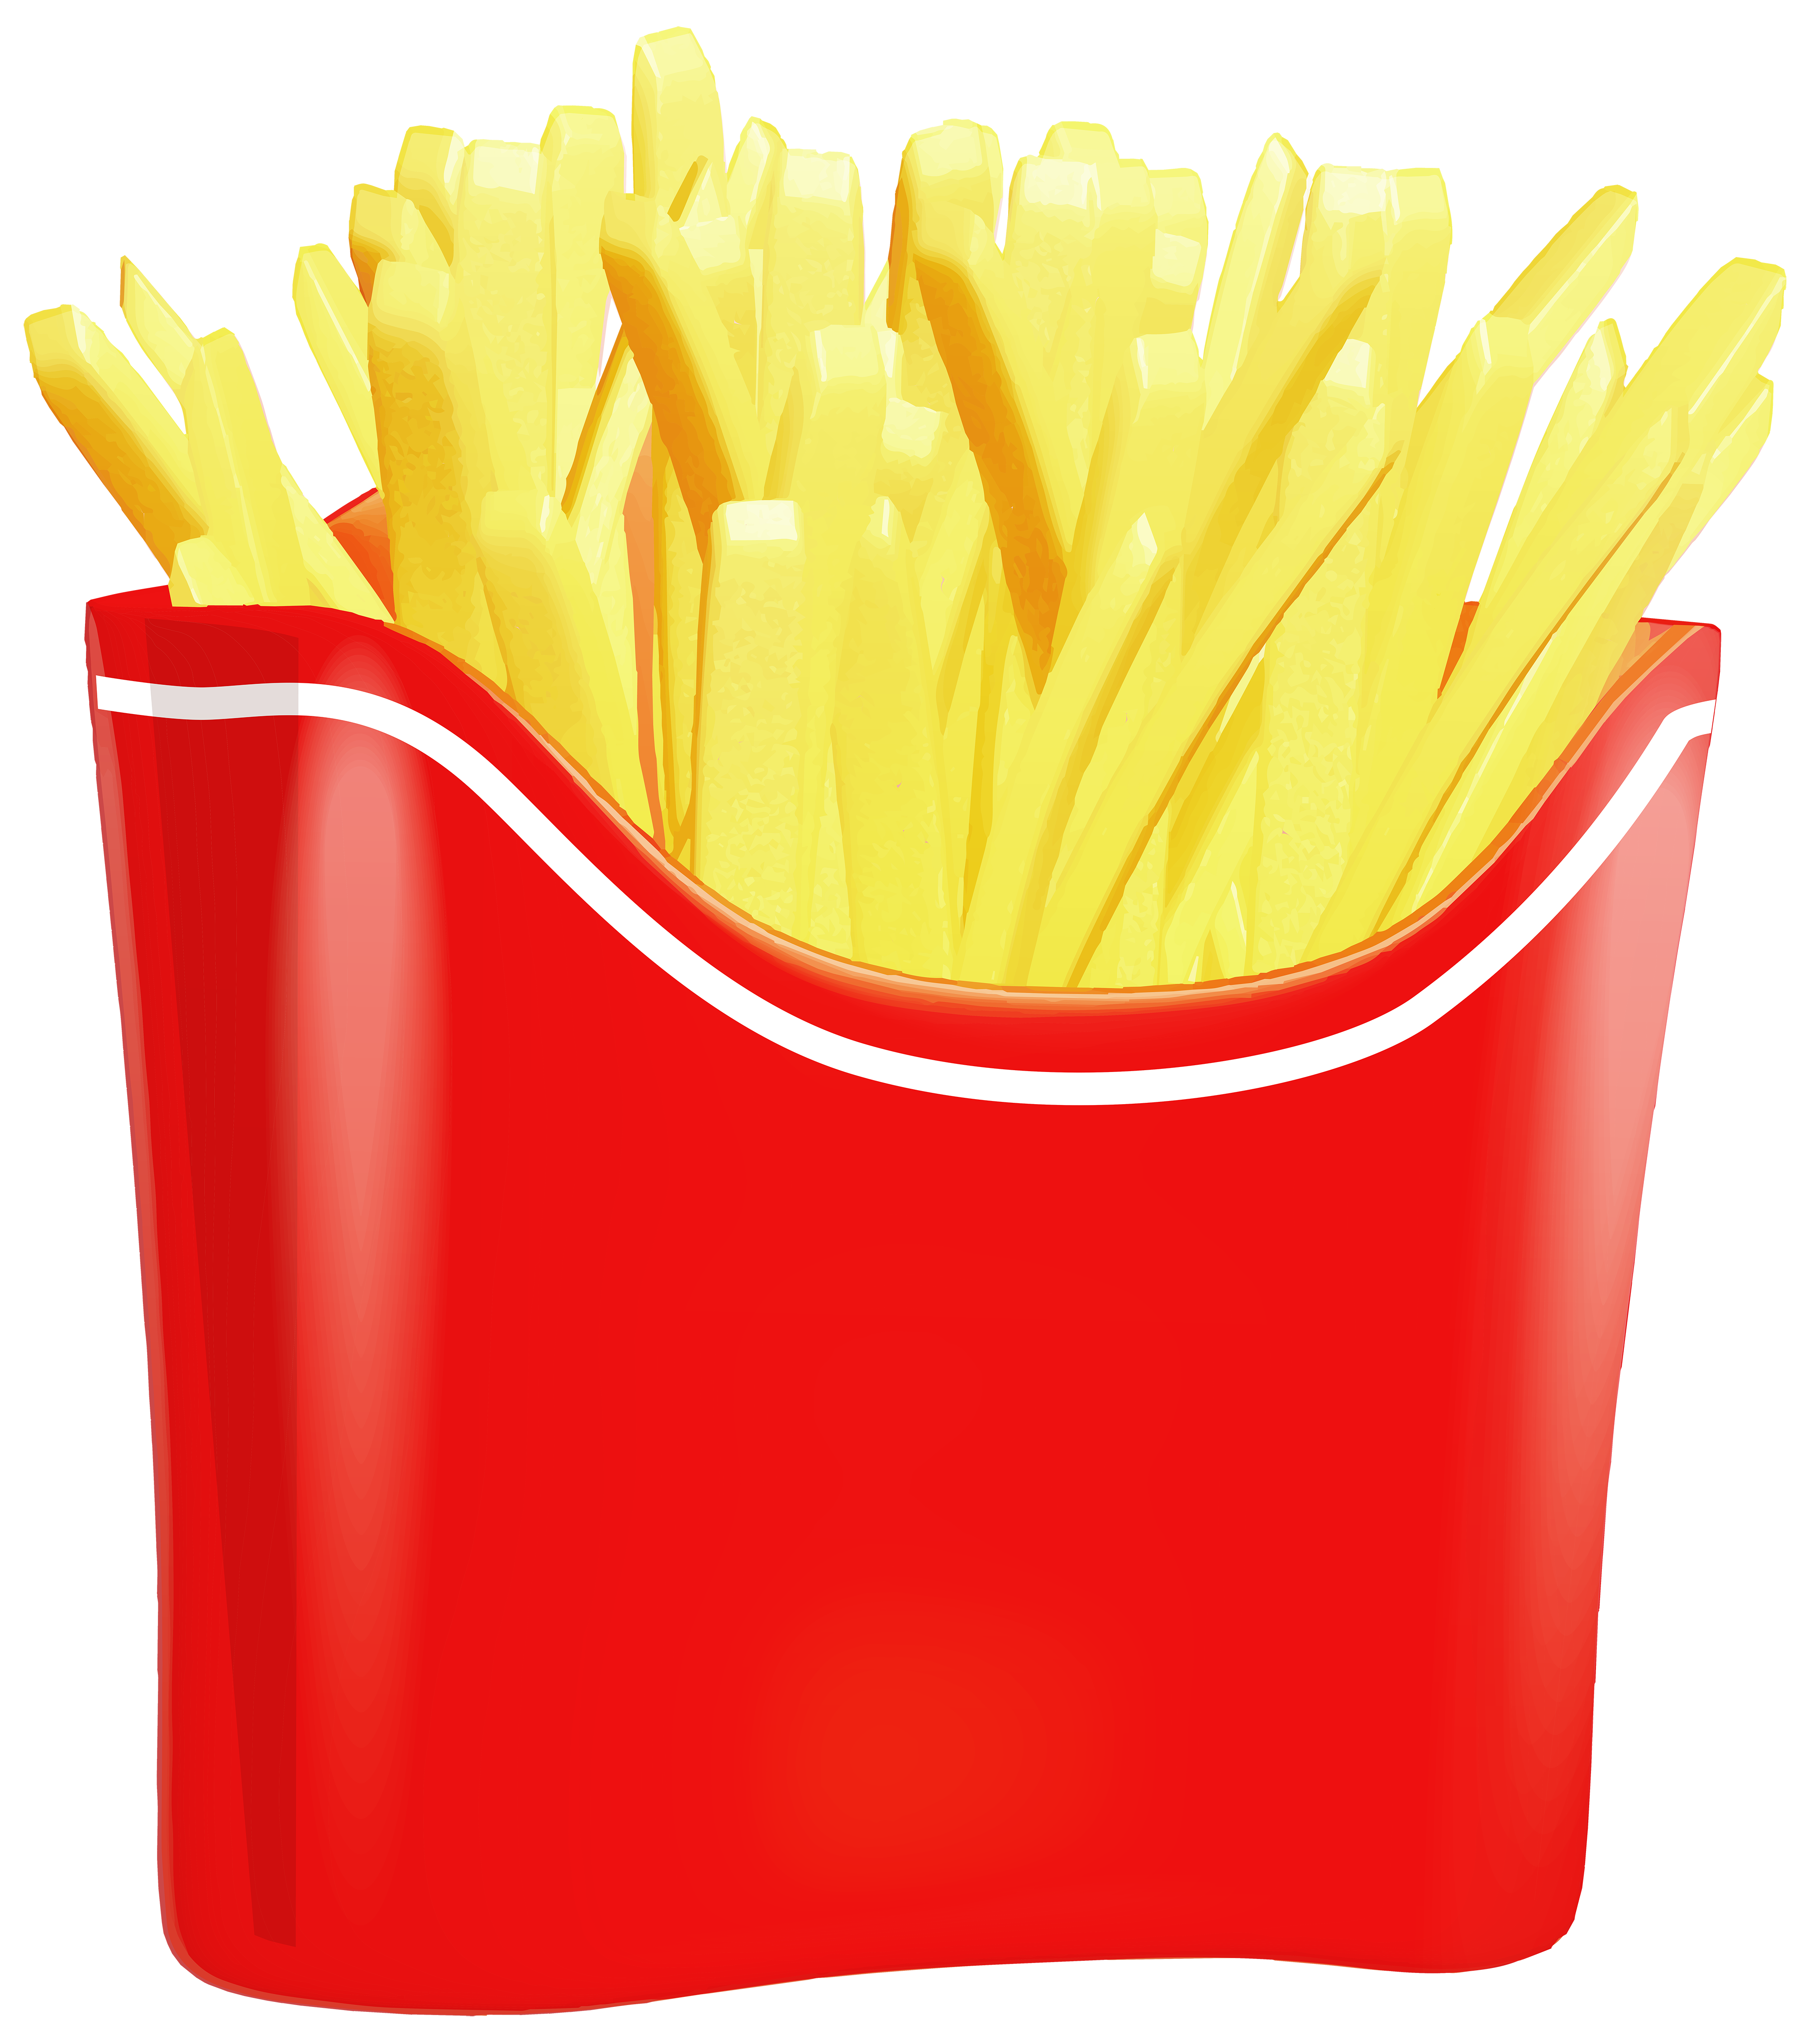 waffle fries png